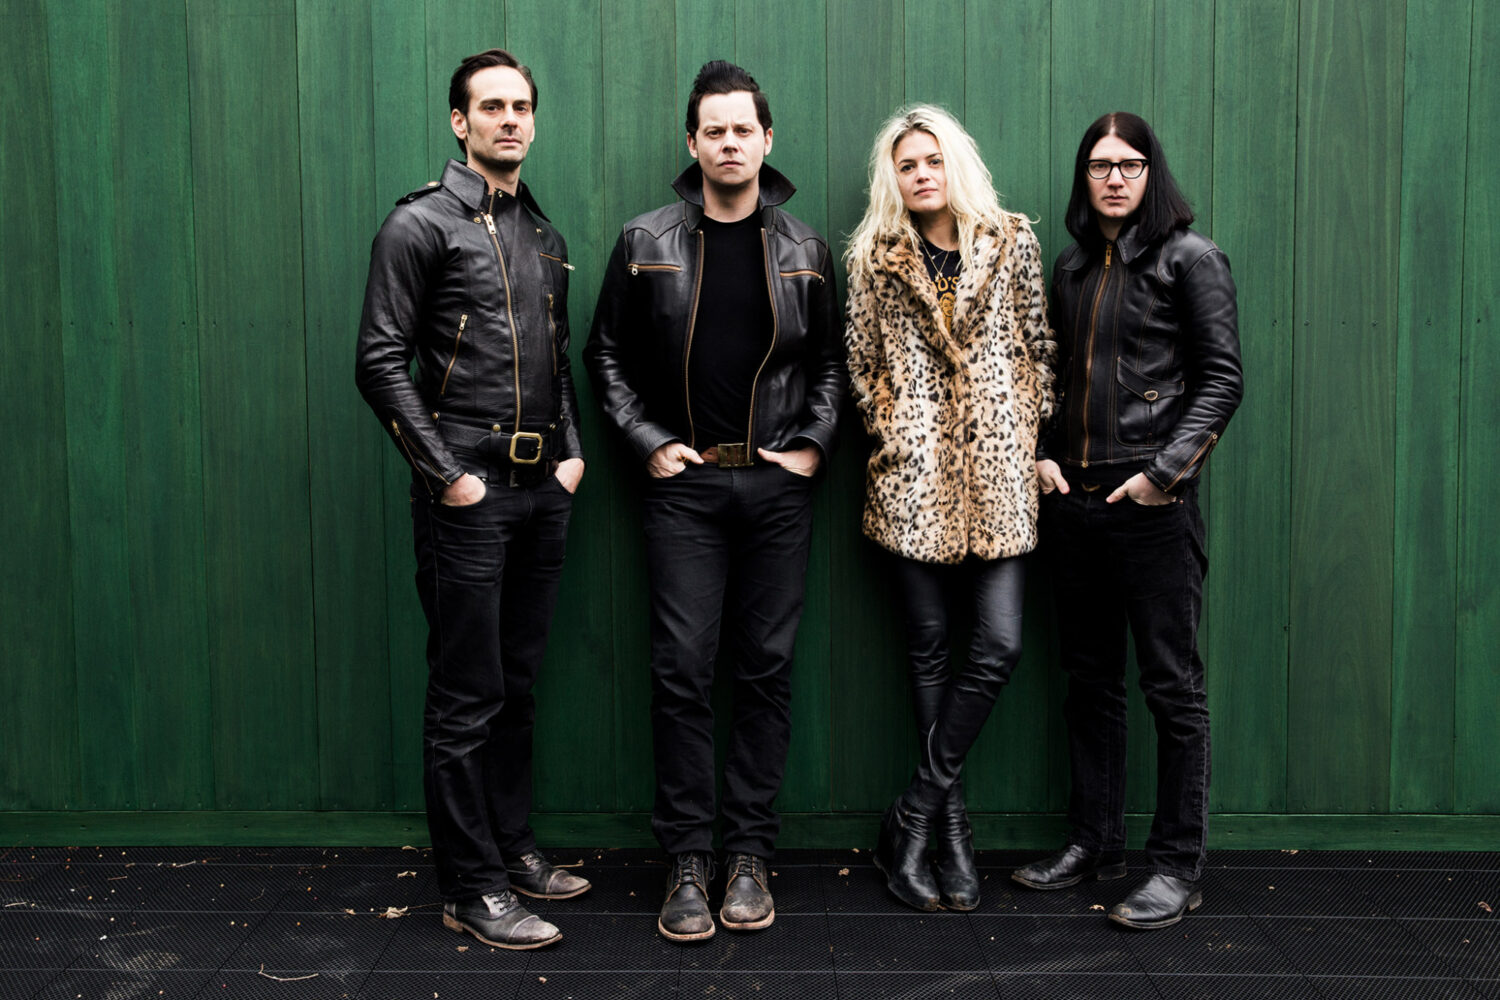 The Dead Weather perform 'I Feel Love (Every Million Miles)' on The Late Show